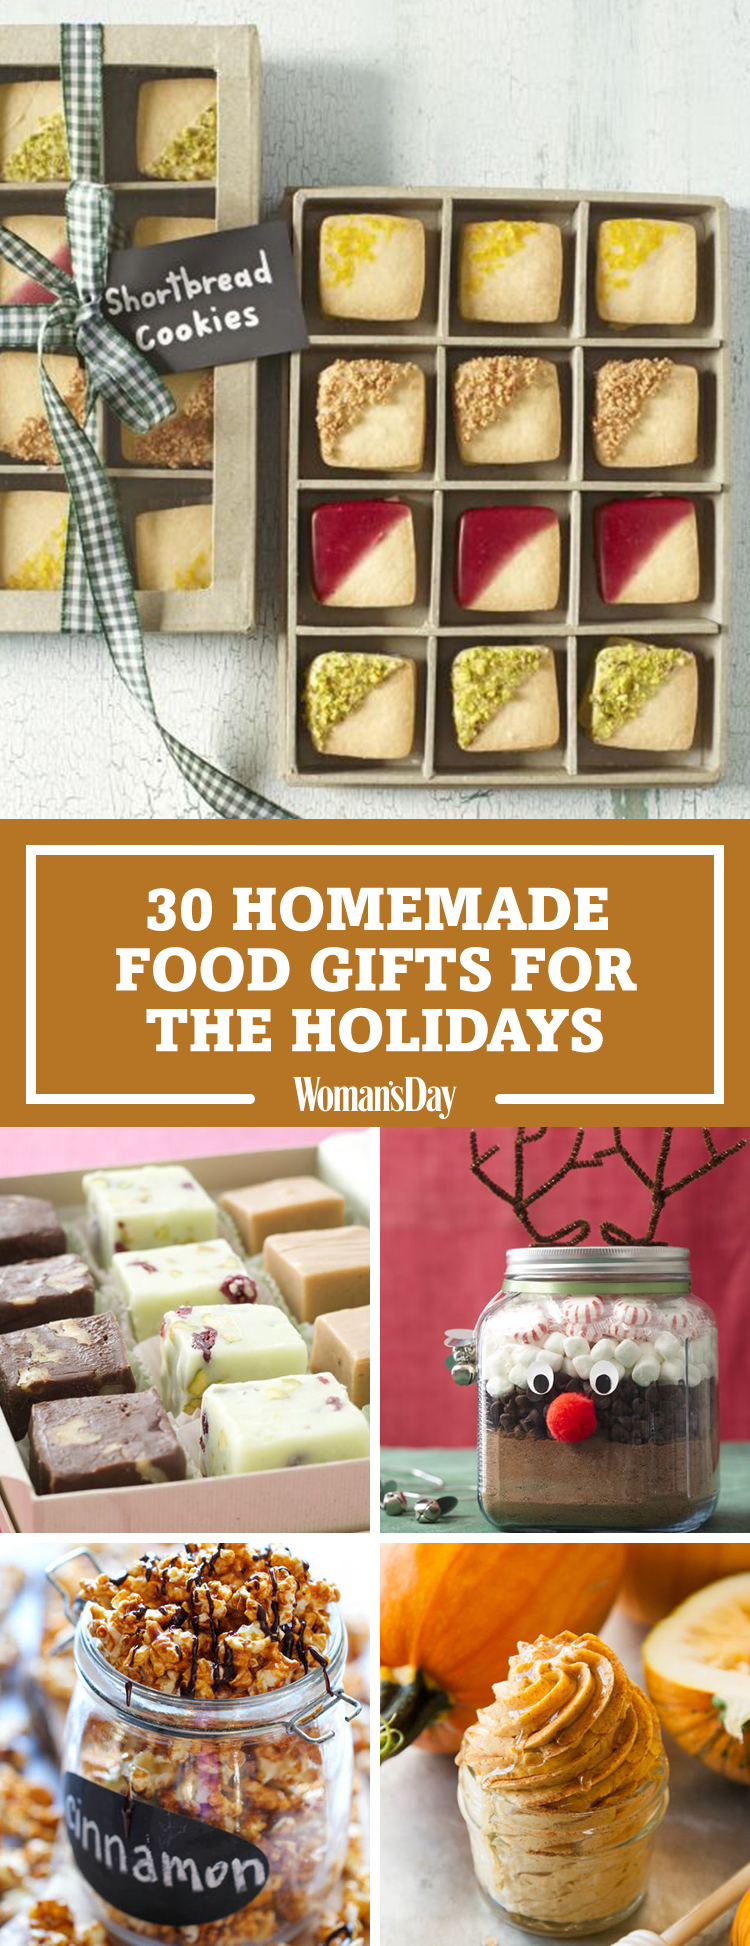 35 homemade christmas food gifts best edible holiday gift ideas forumfinder Choice Image